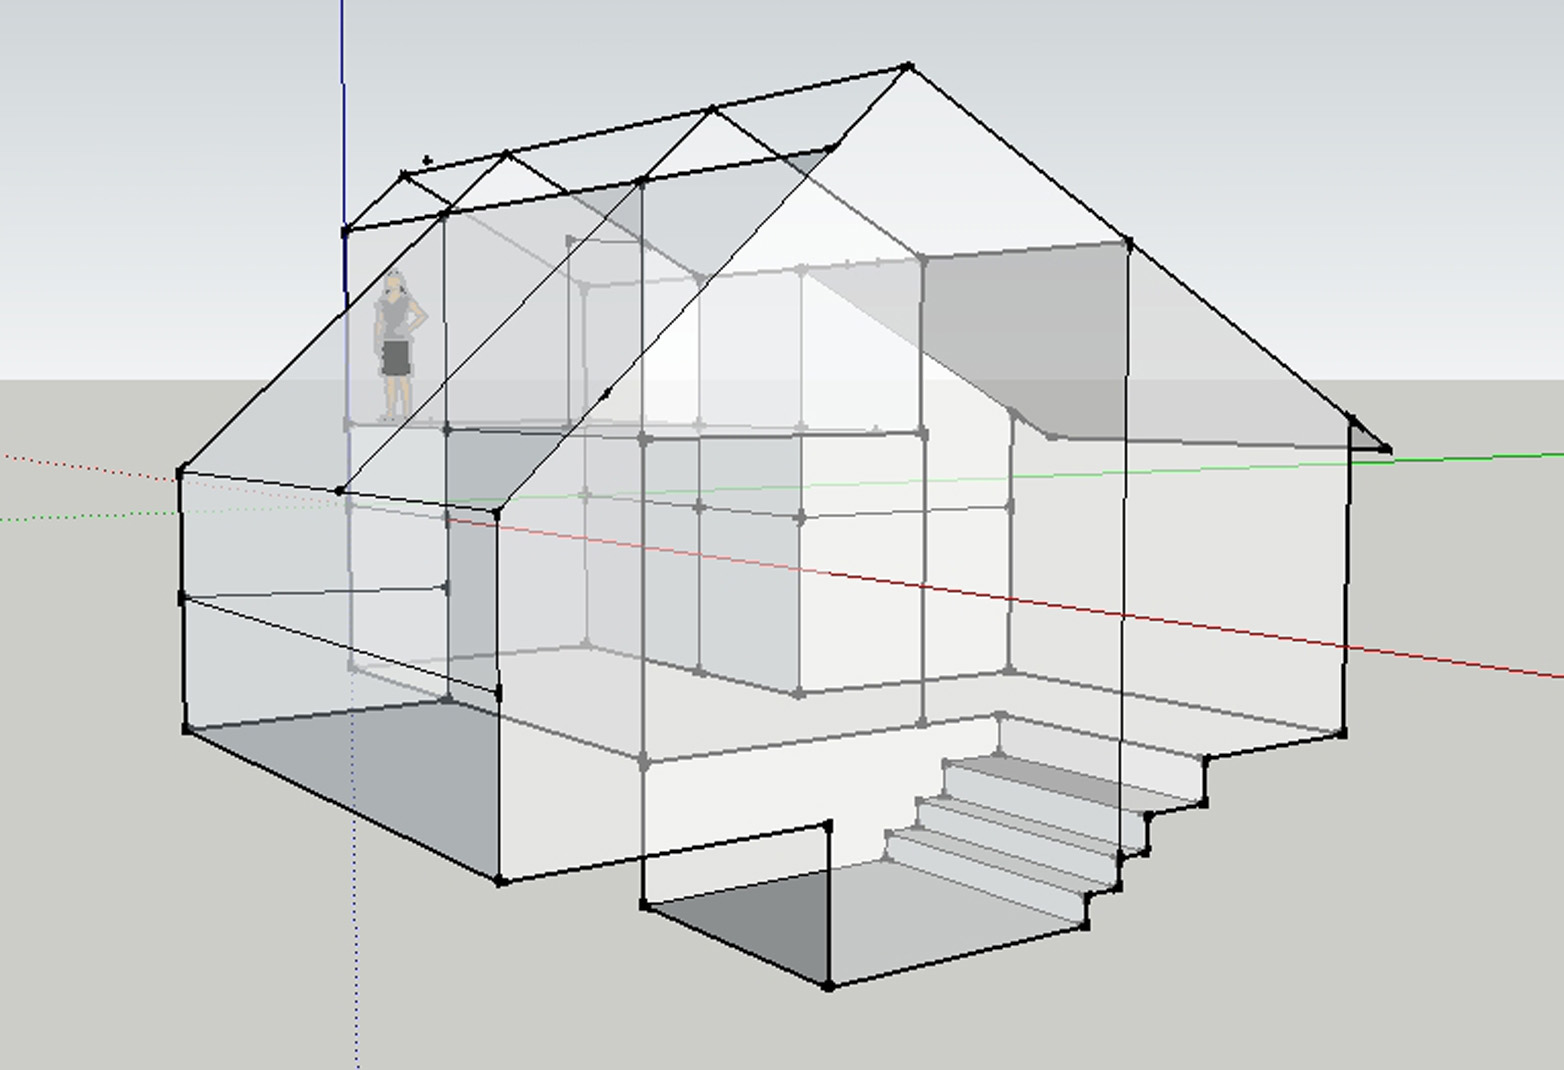 epic greenhouse i just built virtually =) -- sketchup is addictive on elevator designs, sauna designs, passive solar house designs, boho chic room designs, attached deck designs, covered patio roof designs, attached carport designs, attached gazebo designs, indoor pool designs, glass greenhouses designs, large great room designs, art deco vases designs, single attached house designs, attached sunroom designs, underground home designs, awesome shed designs, formal dining room designs, attached pergola designs, garden shed designs, attached patio designs,